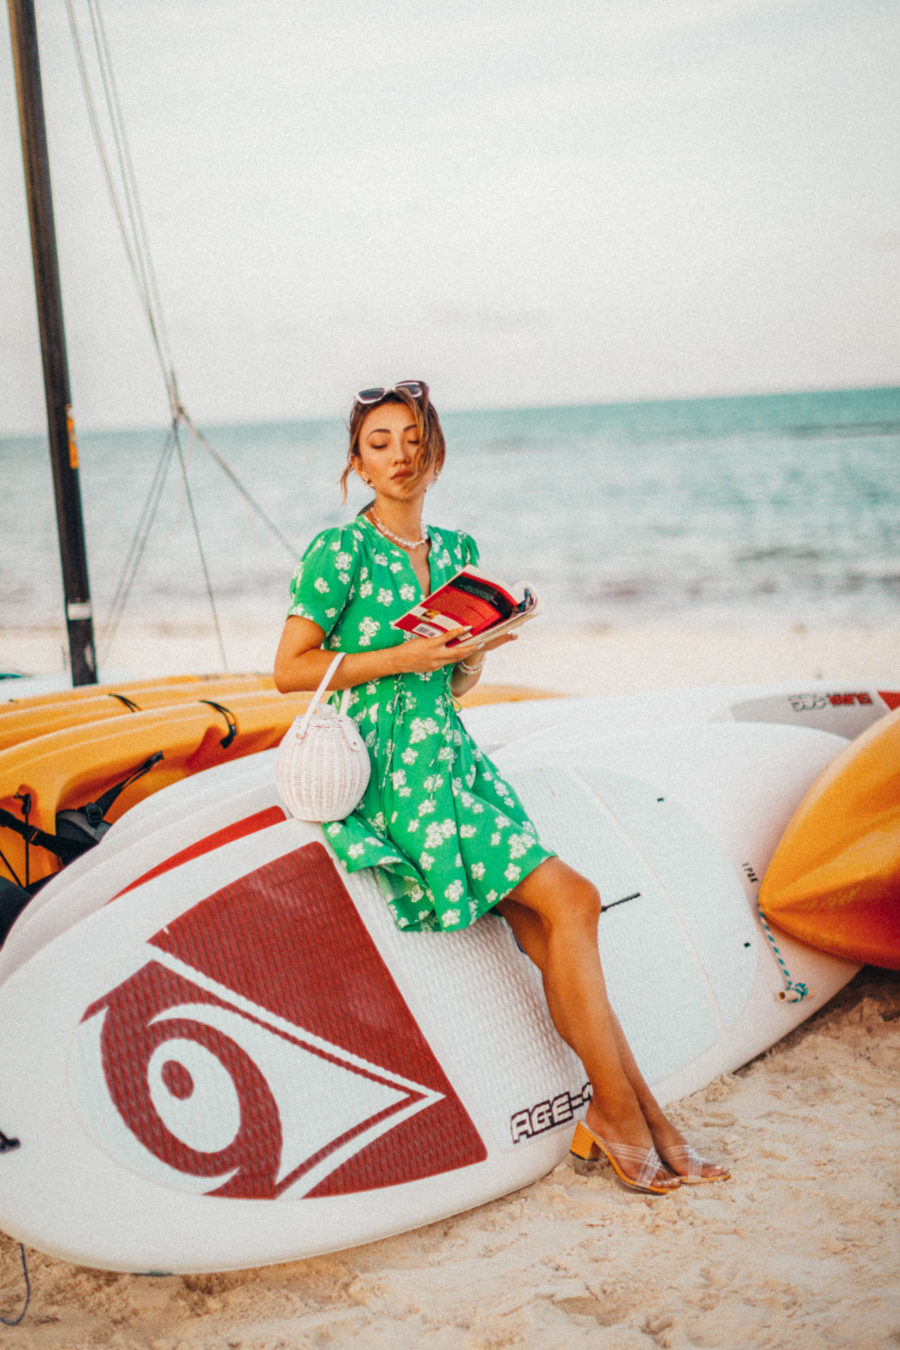 fashion blogger jessica wang wears green dress in mexico while sharing her spring reading list // Jessica Wang - Notjessfashion.com